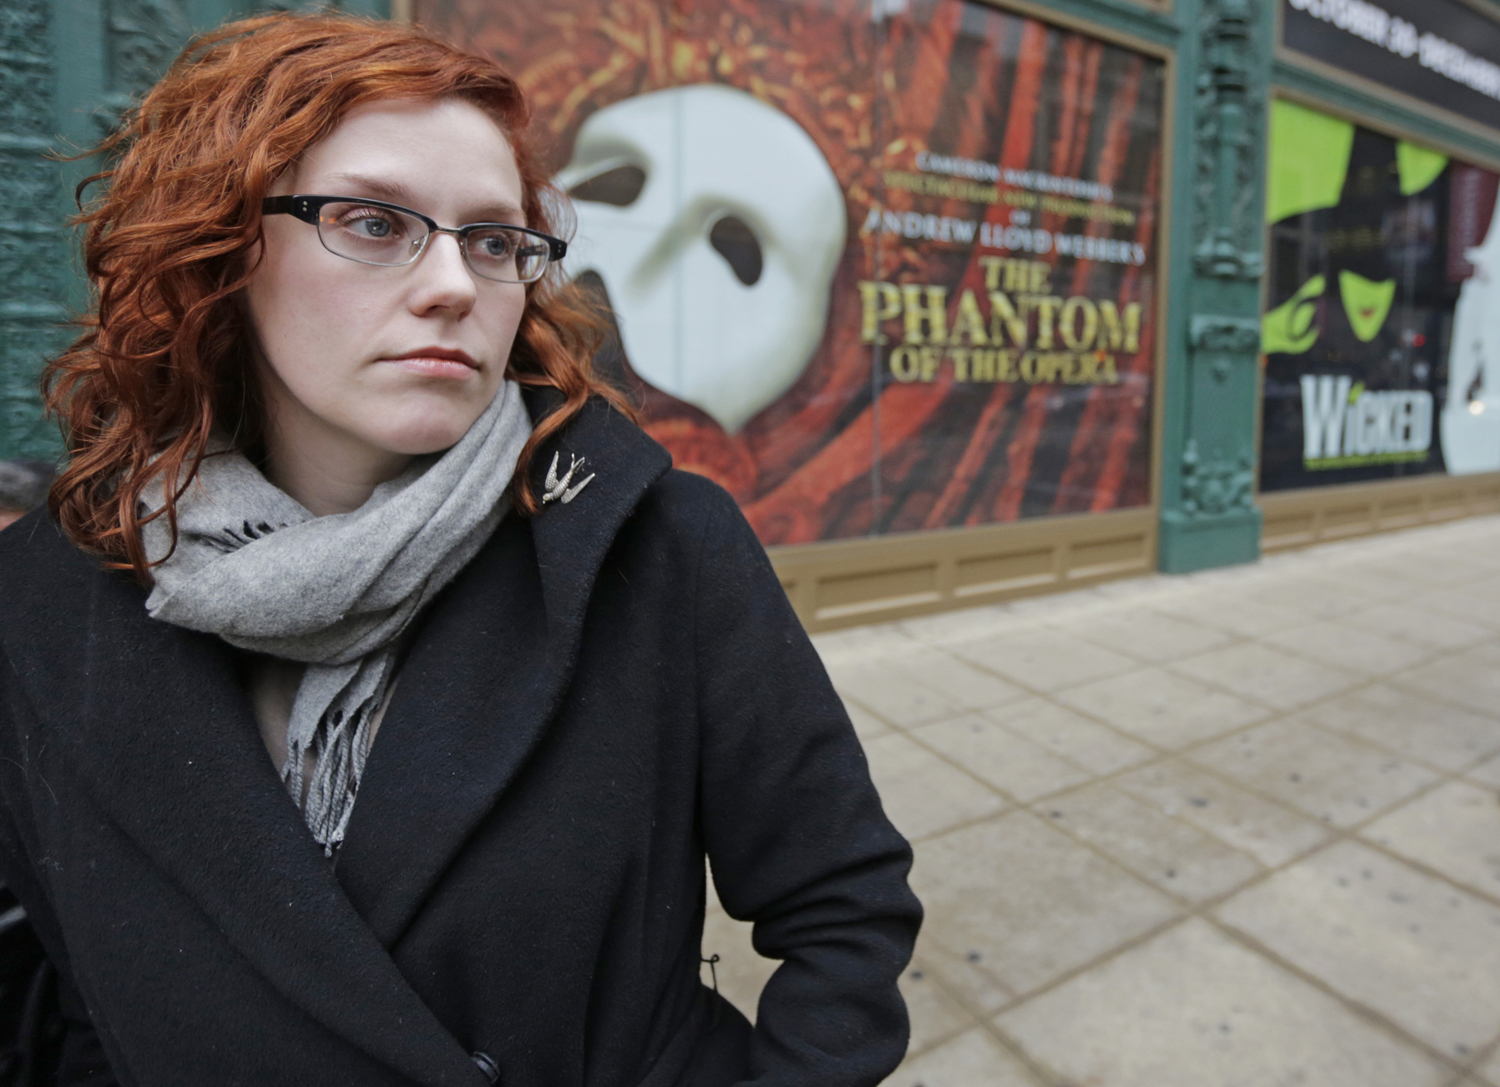 FILE - In this Dec. 3, 2013 file photo, actor Adrienne Matzen poses in Chicago's theater district. Matzen, 29, who has been mostly uninsured since she...